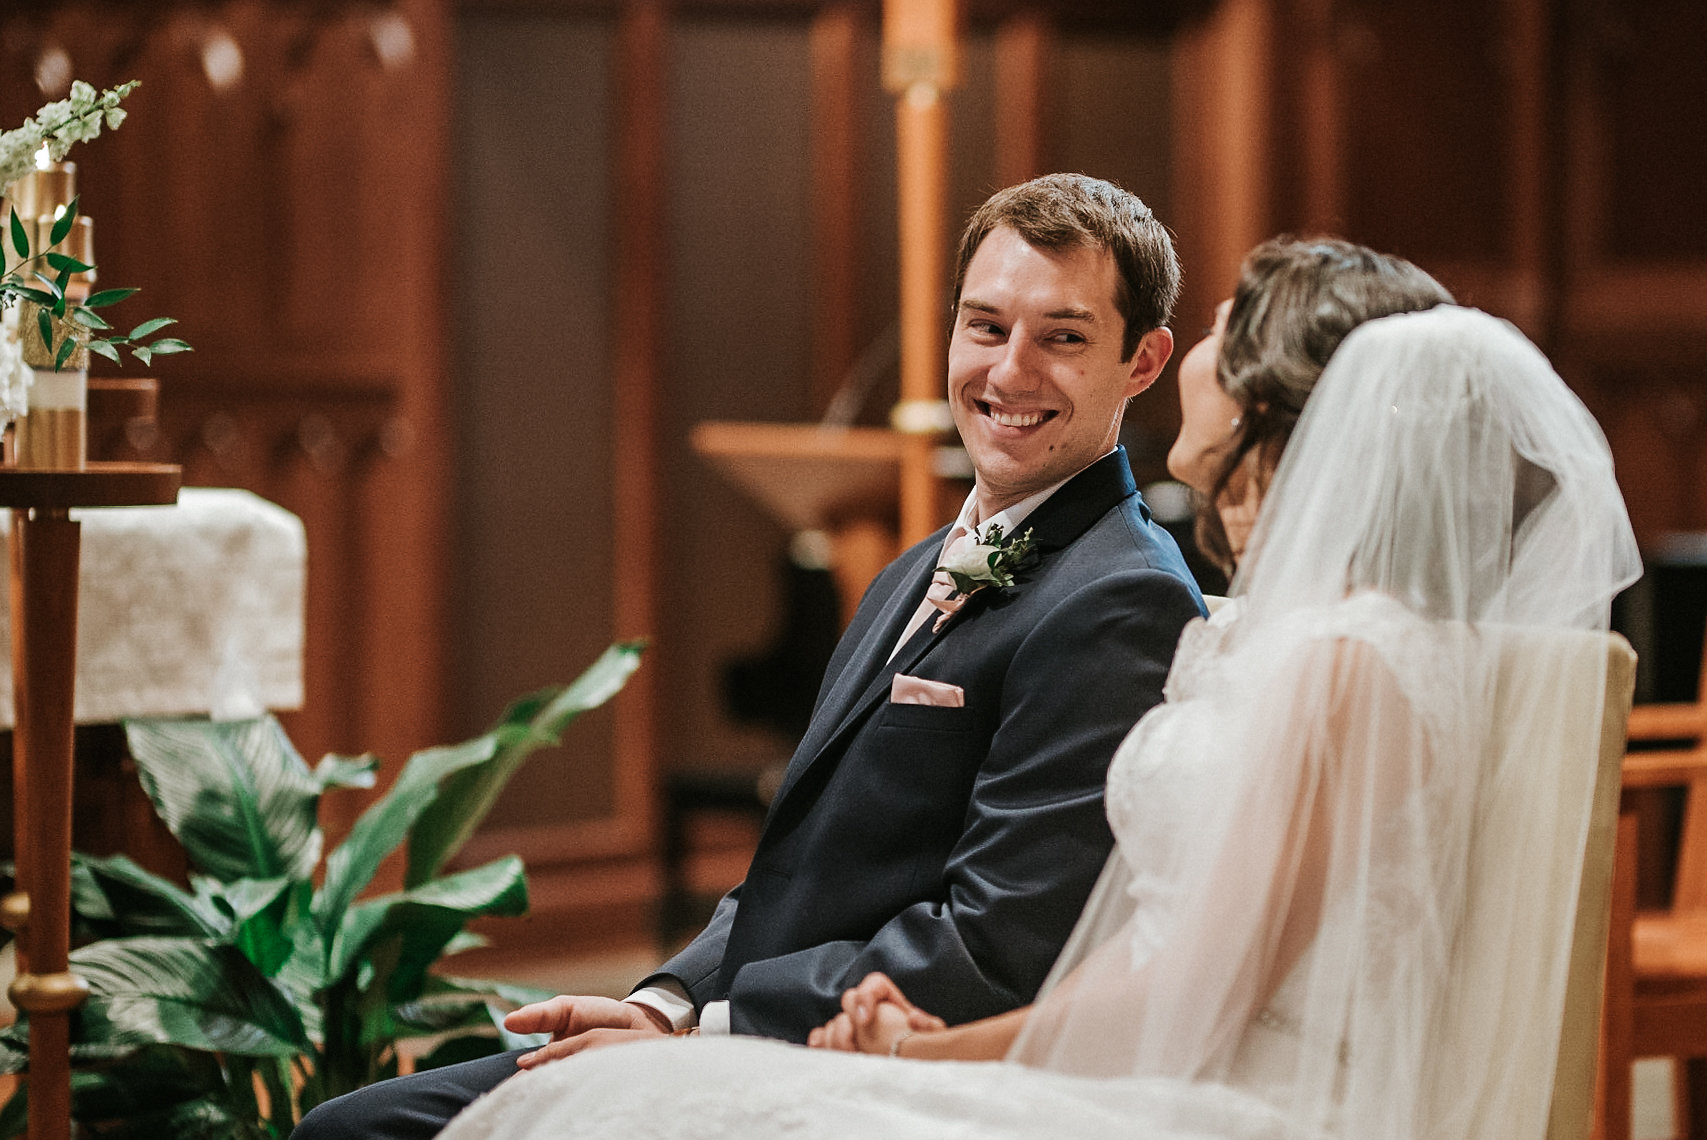 Bride and groom smiling at one another during wedding